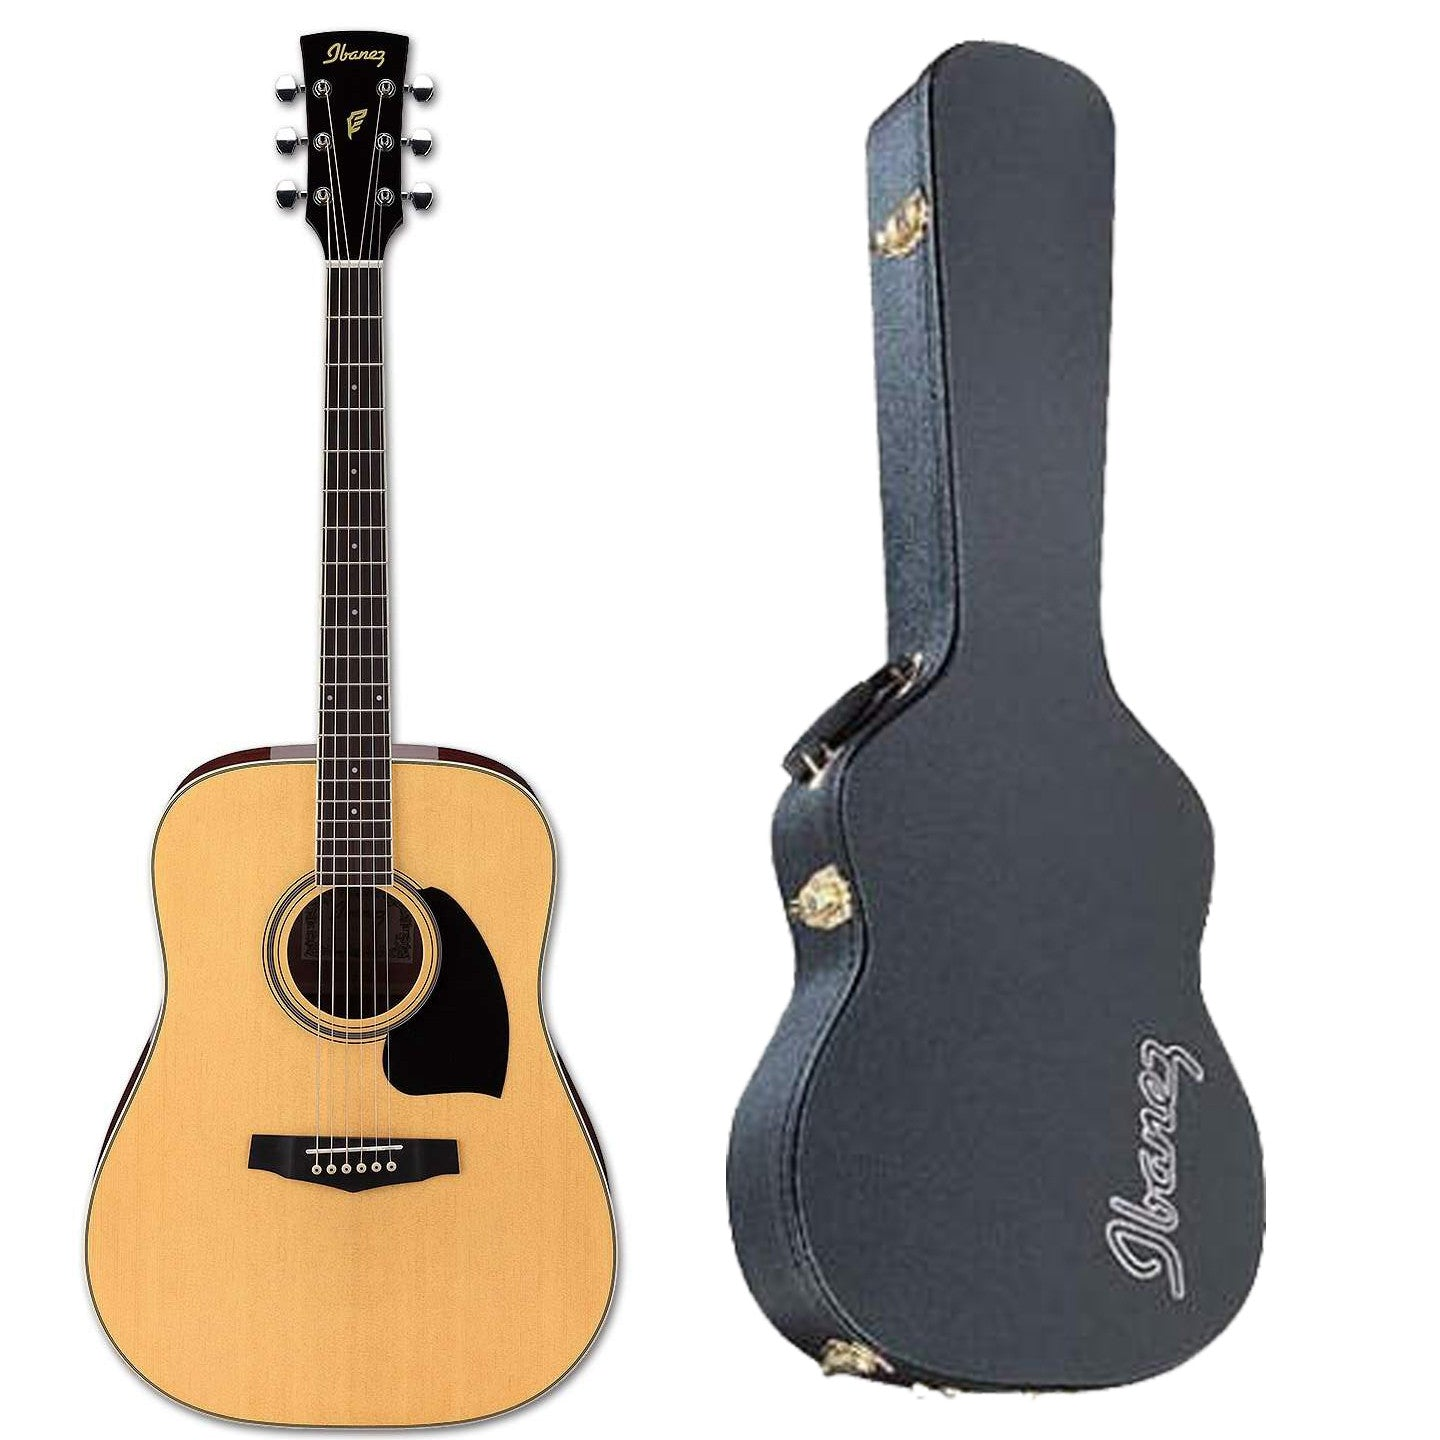 Shop online for Ibanez PF15NT Dreadnought Acoustic Guitar Natural w/FREE Hardshell today.  Now available for purchase from Midlothian Music of Orland Park, Illinois, USA